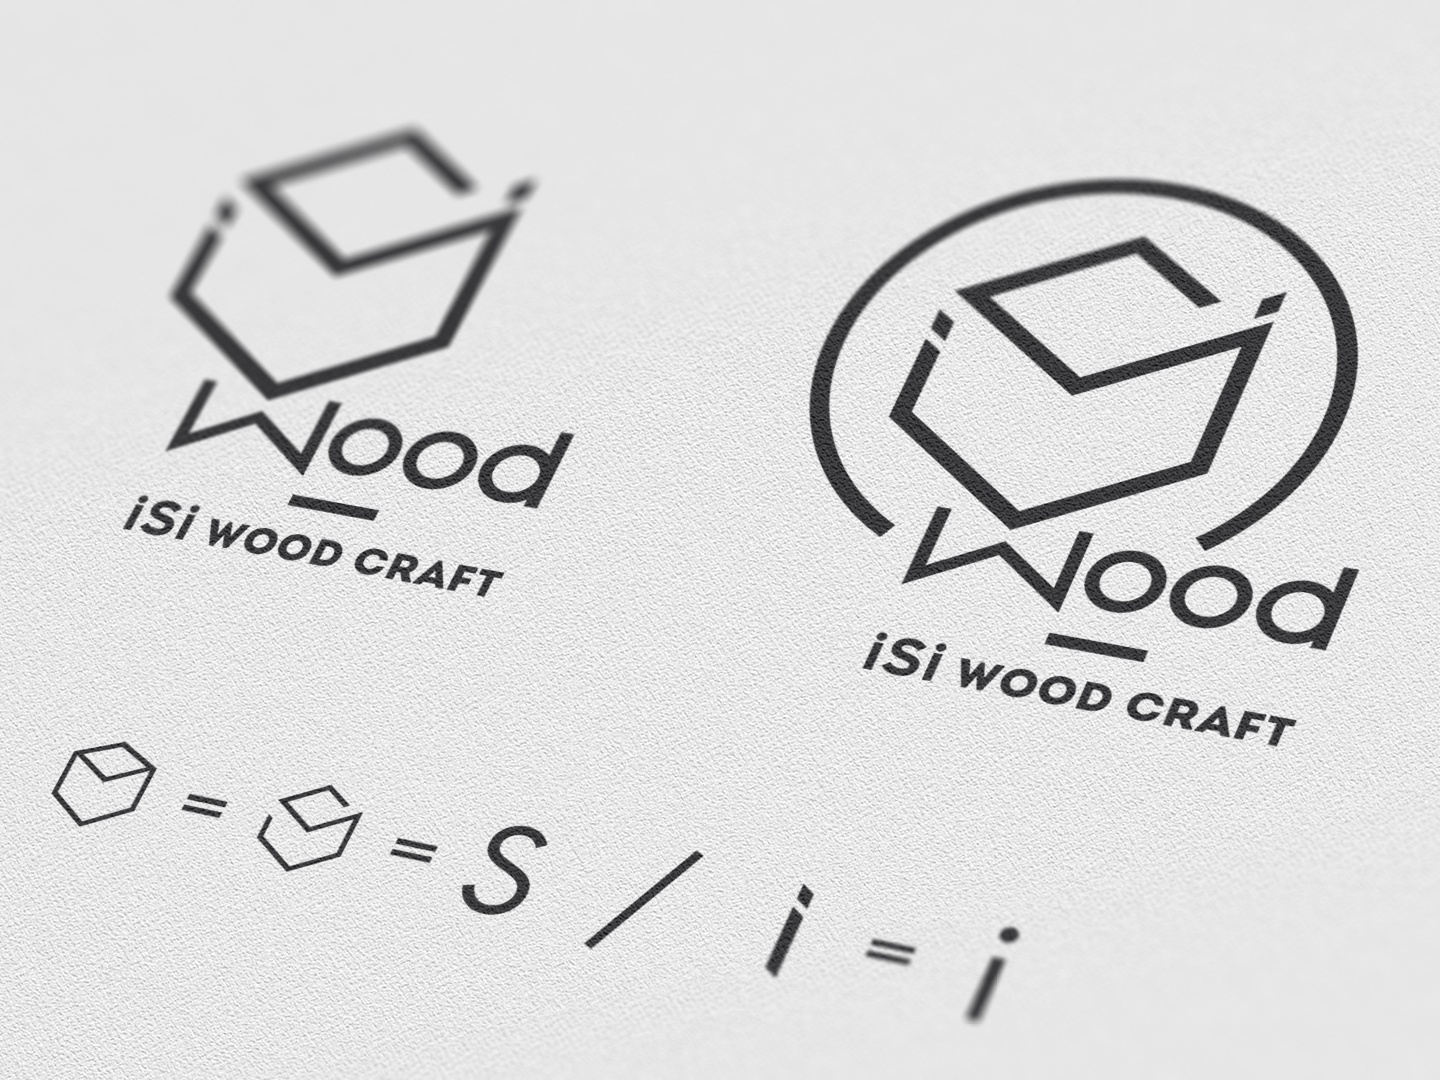 Isi Wood Craft Design Logo Perspective By Brainy Works Graphics